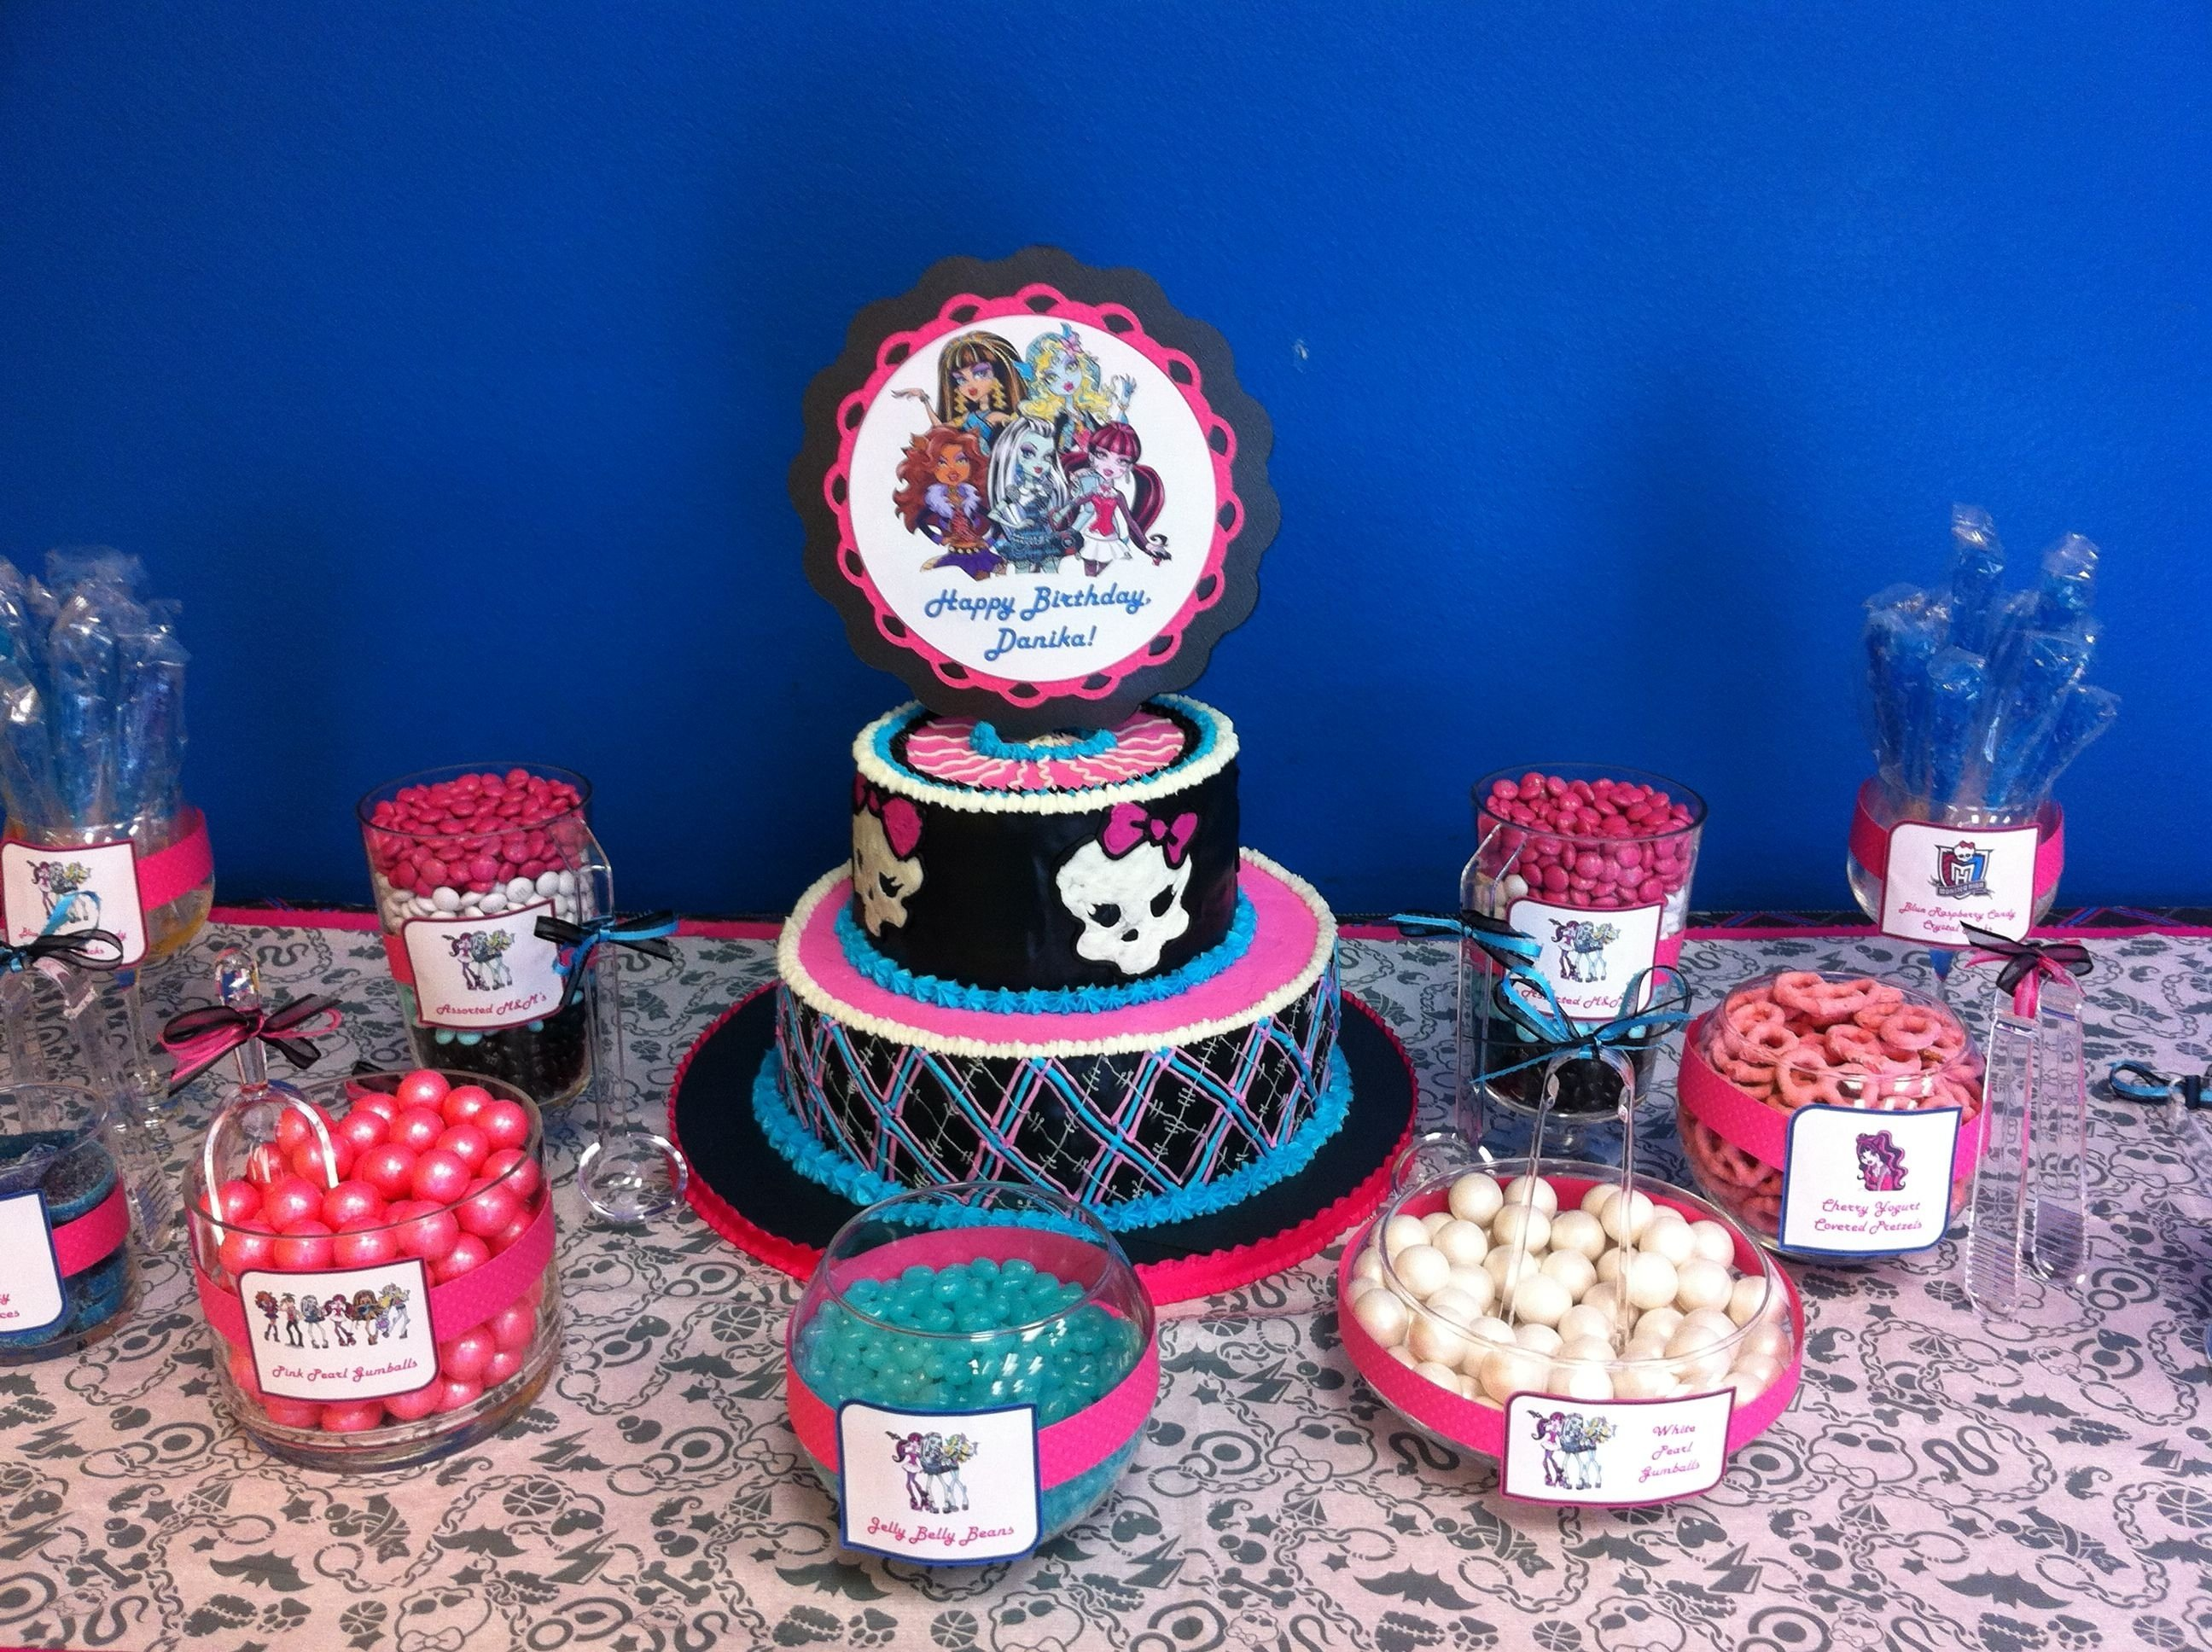 10 Fabulous Monster High Ideas For Birthday Party monster high birthday party ideas monster high birthday candy 2020